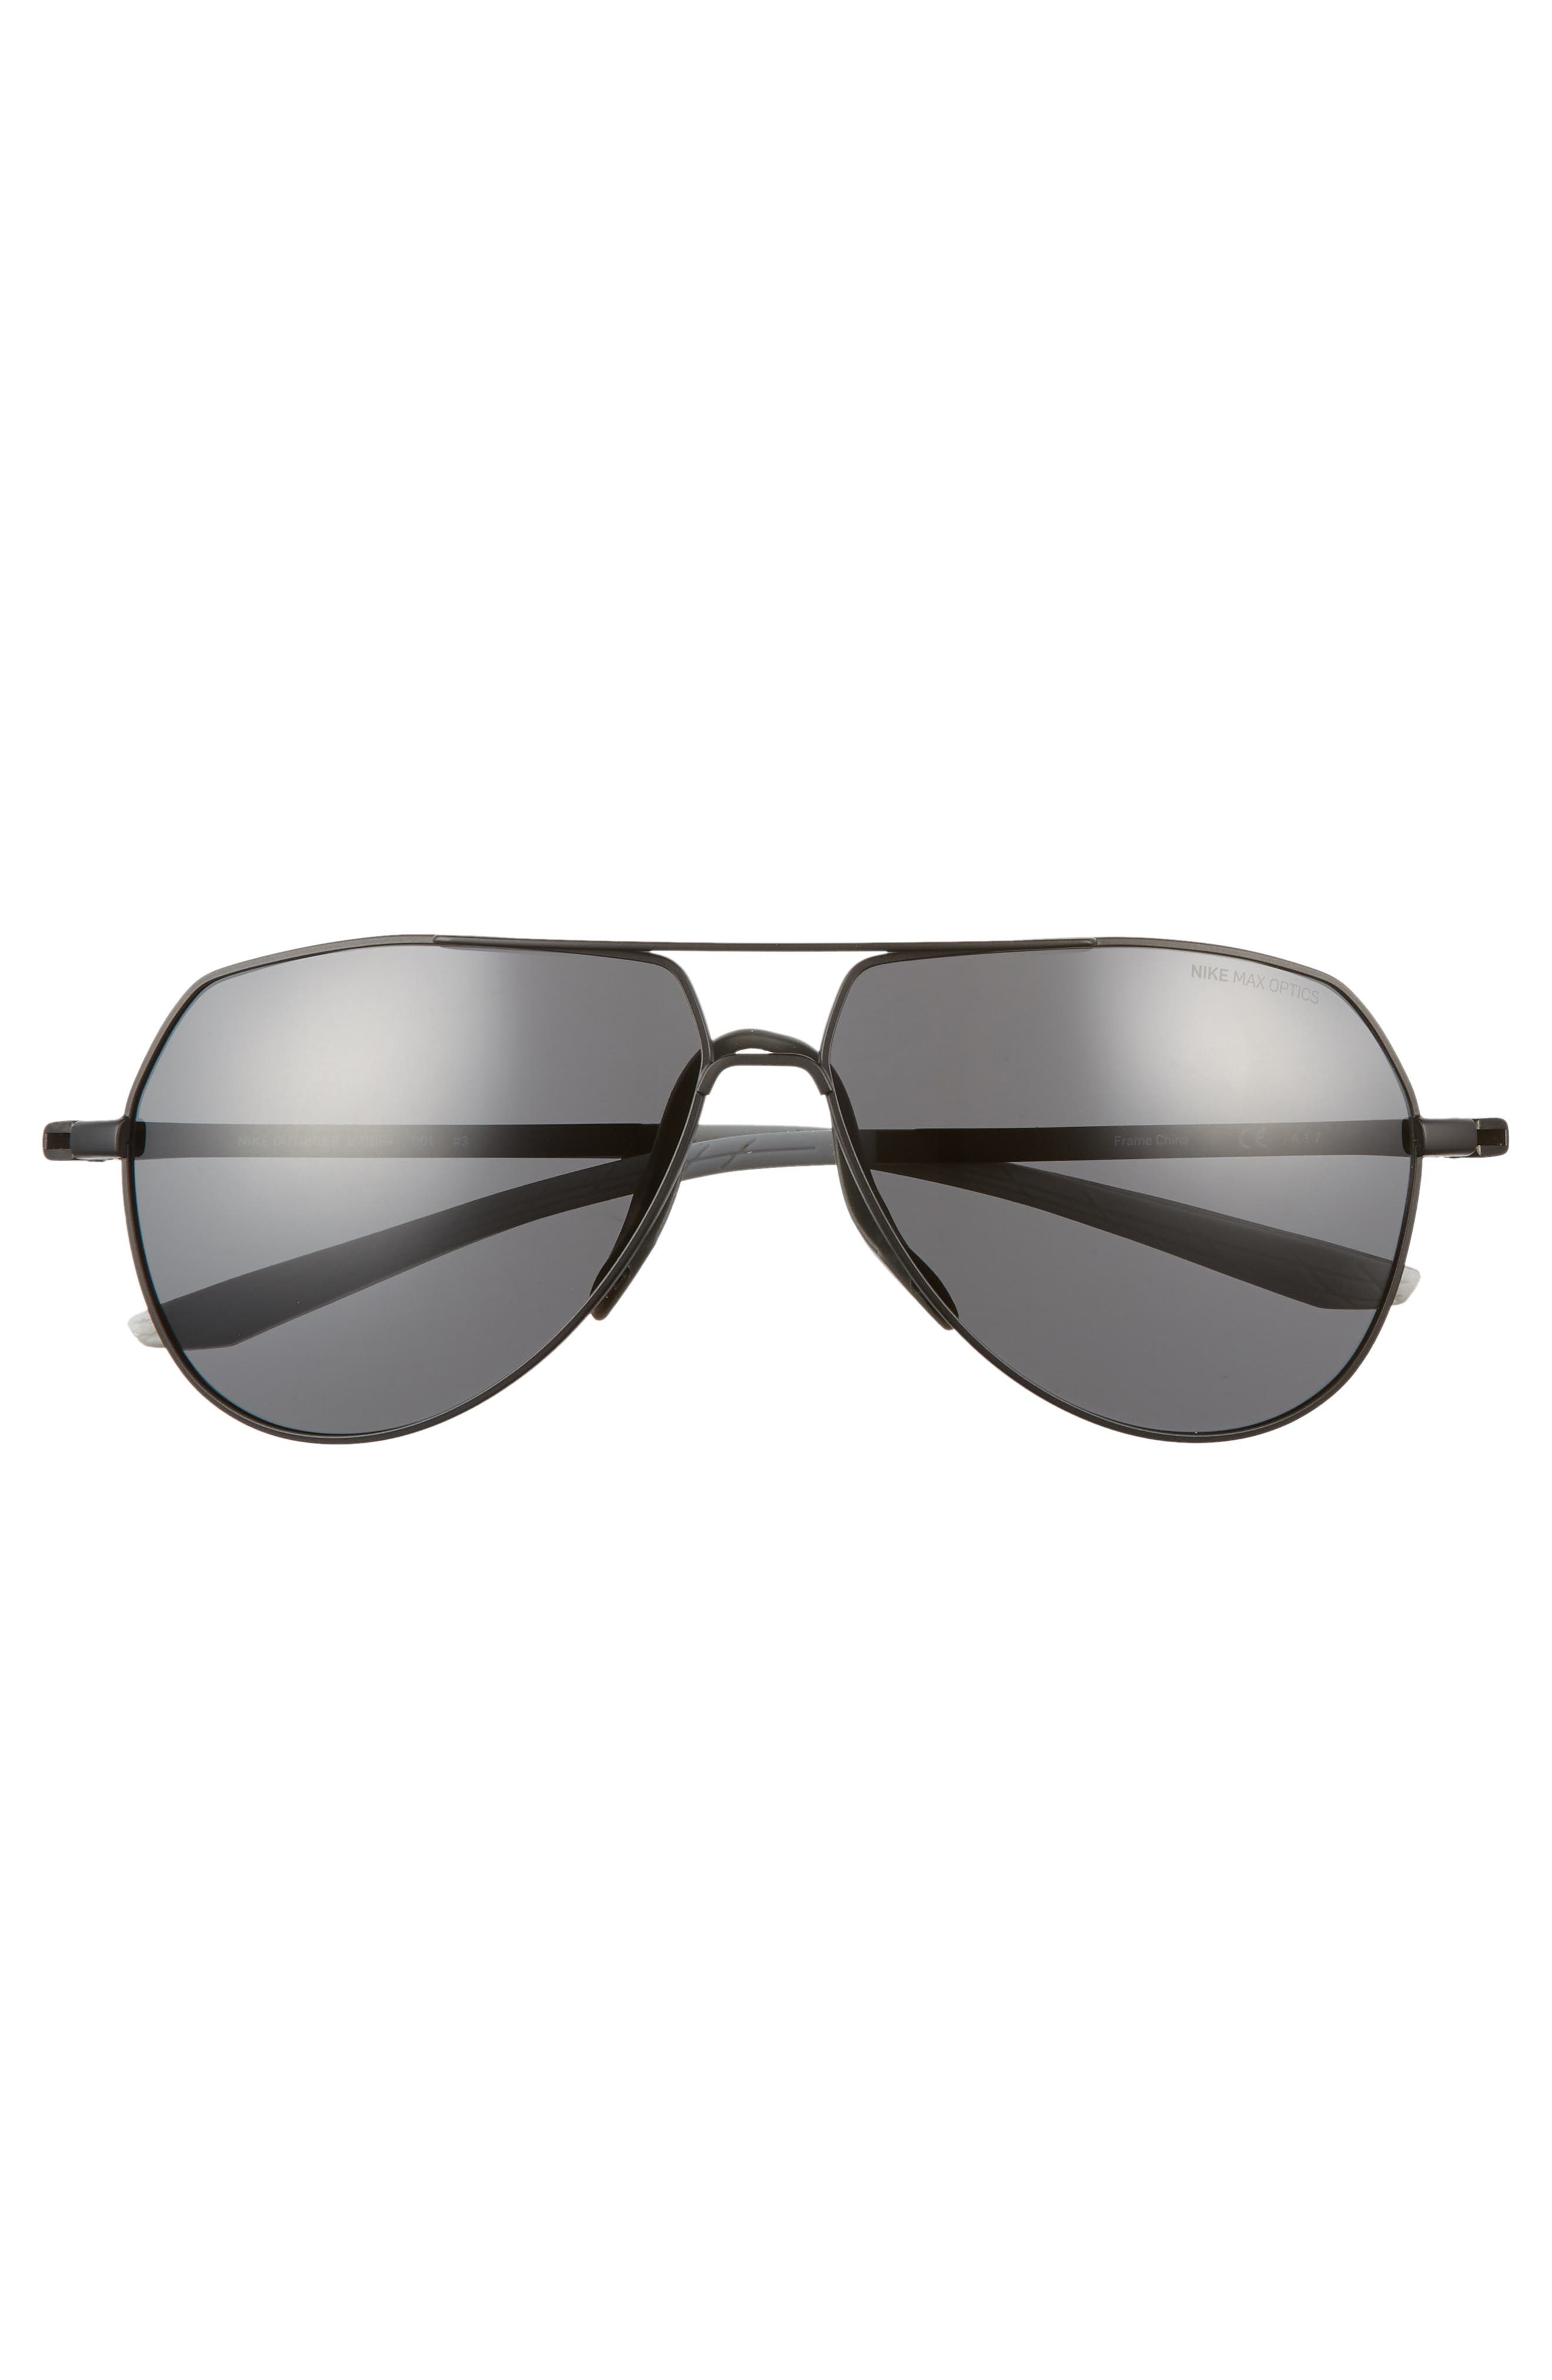 Outrider 62mm Oversize Aviator Sunglasses,                             Alternate thumbnail 2, color,                             BLACK/ GREY